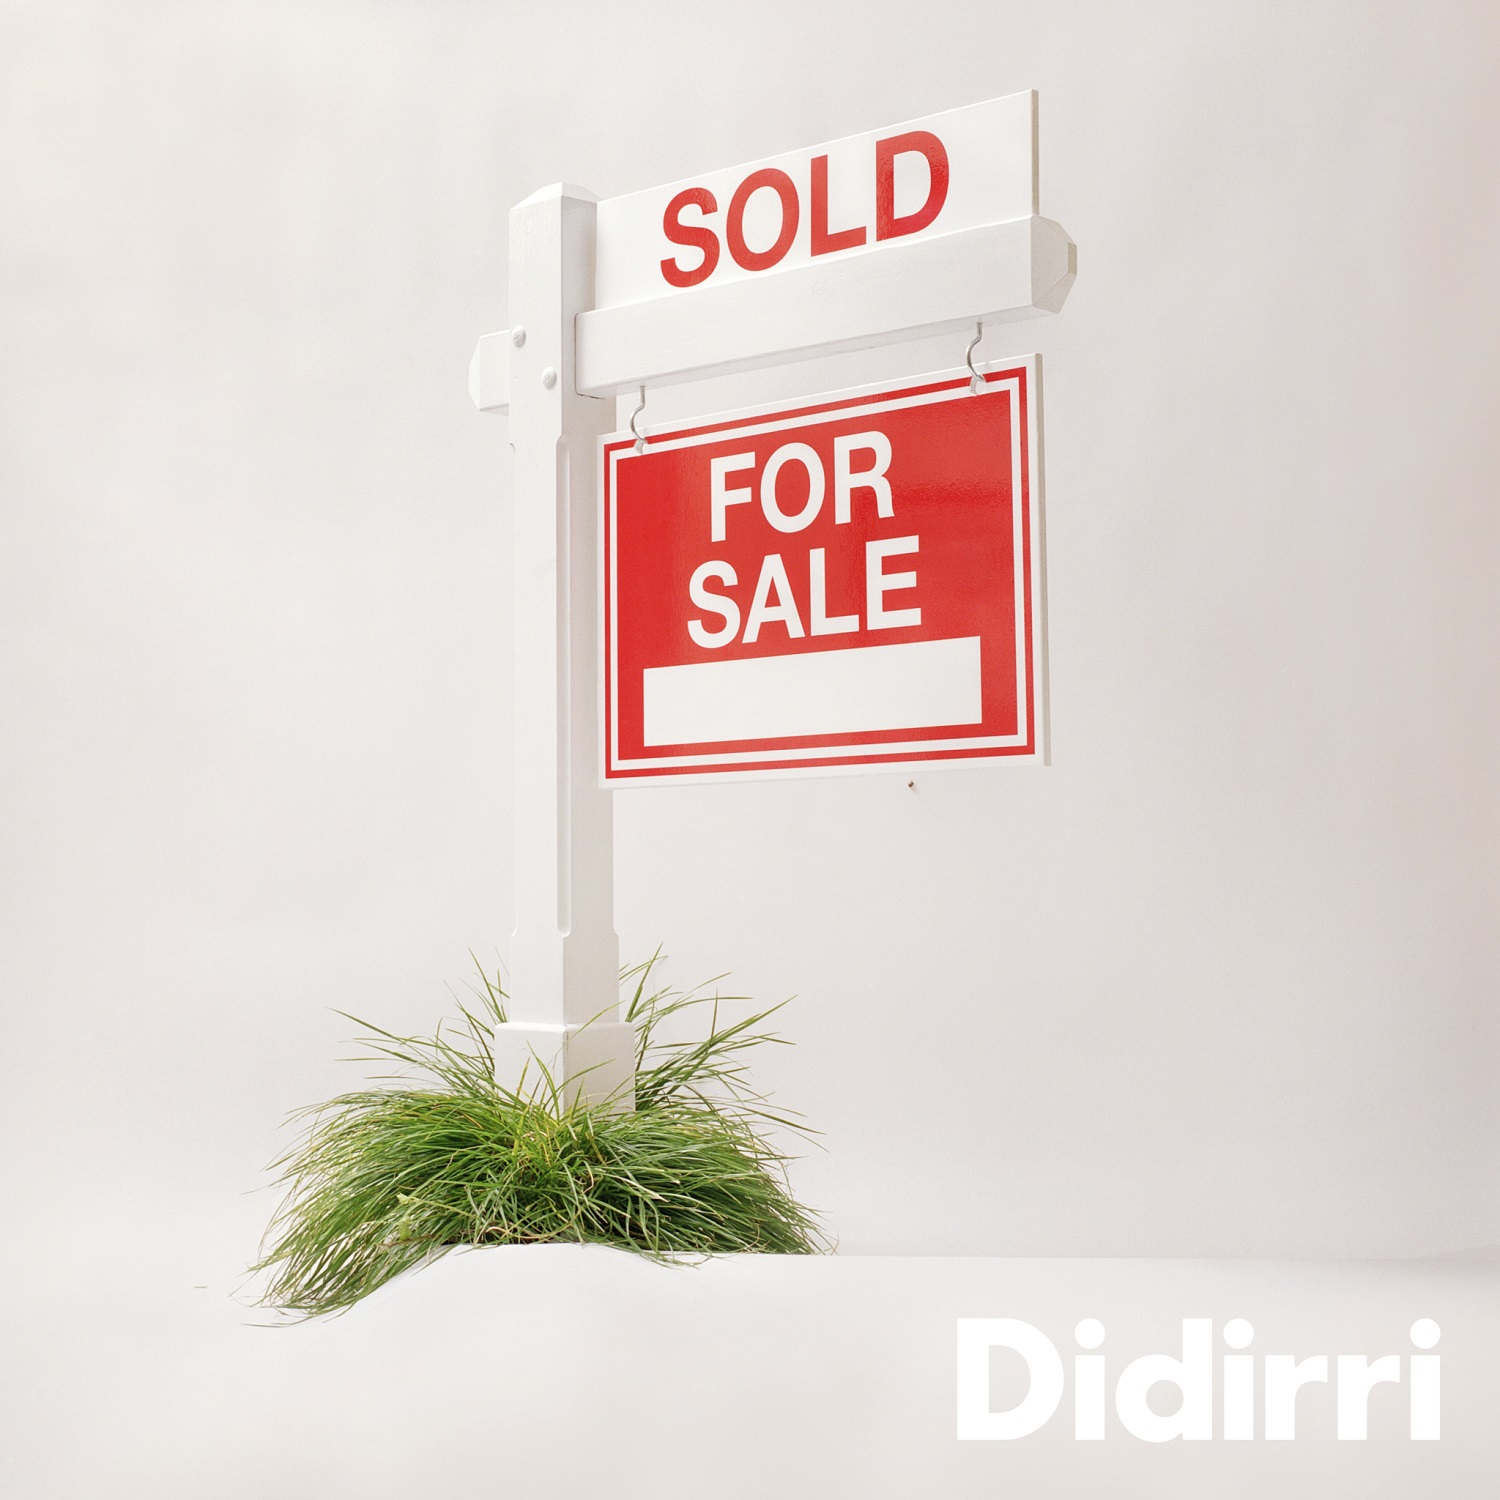 didirri sold for sale cover